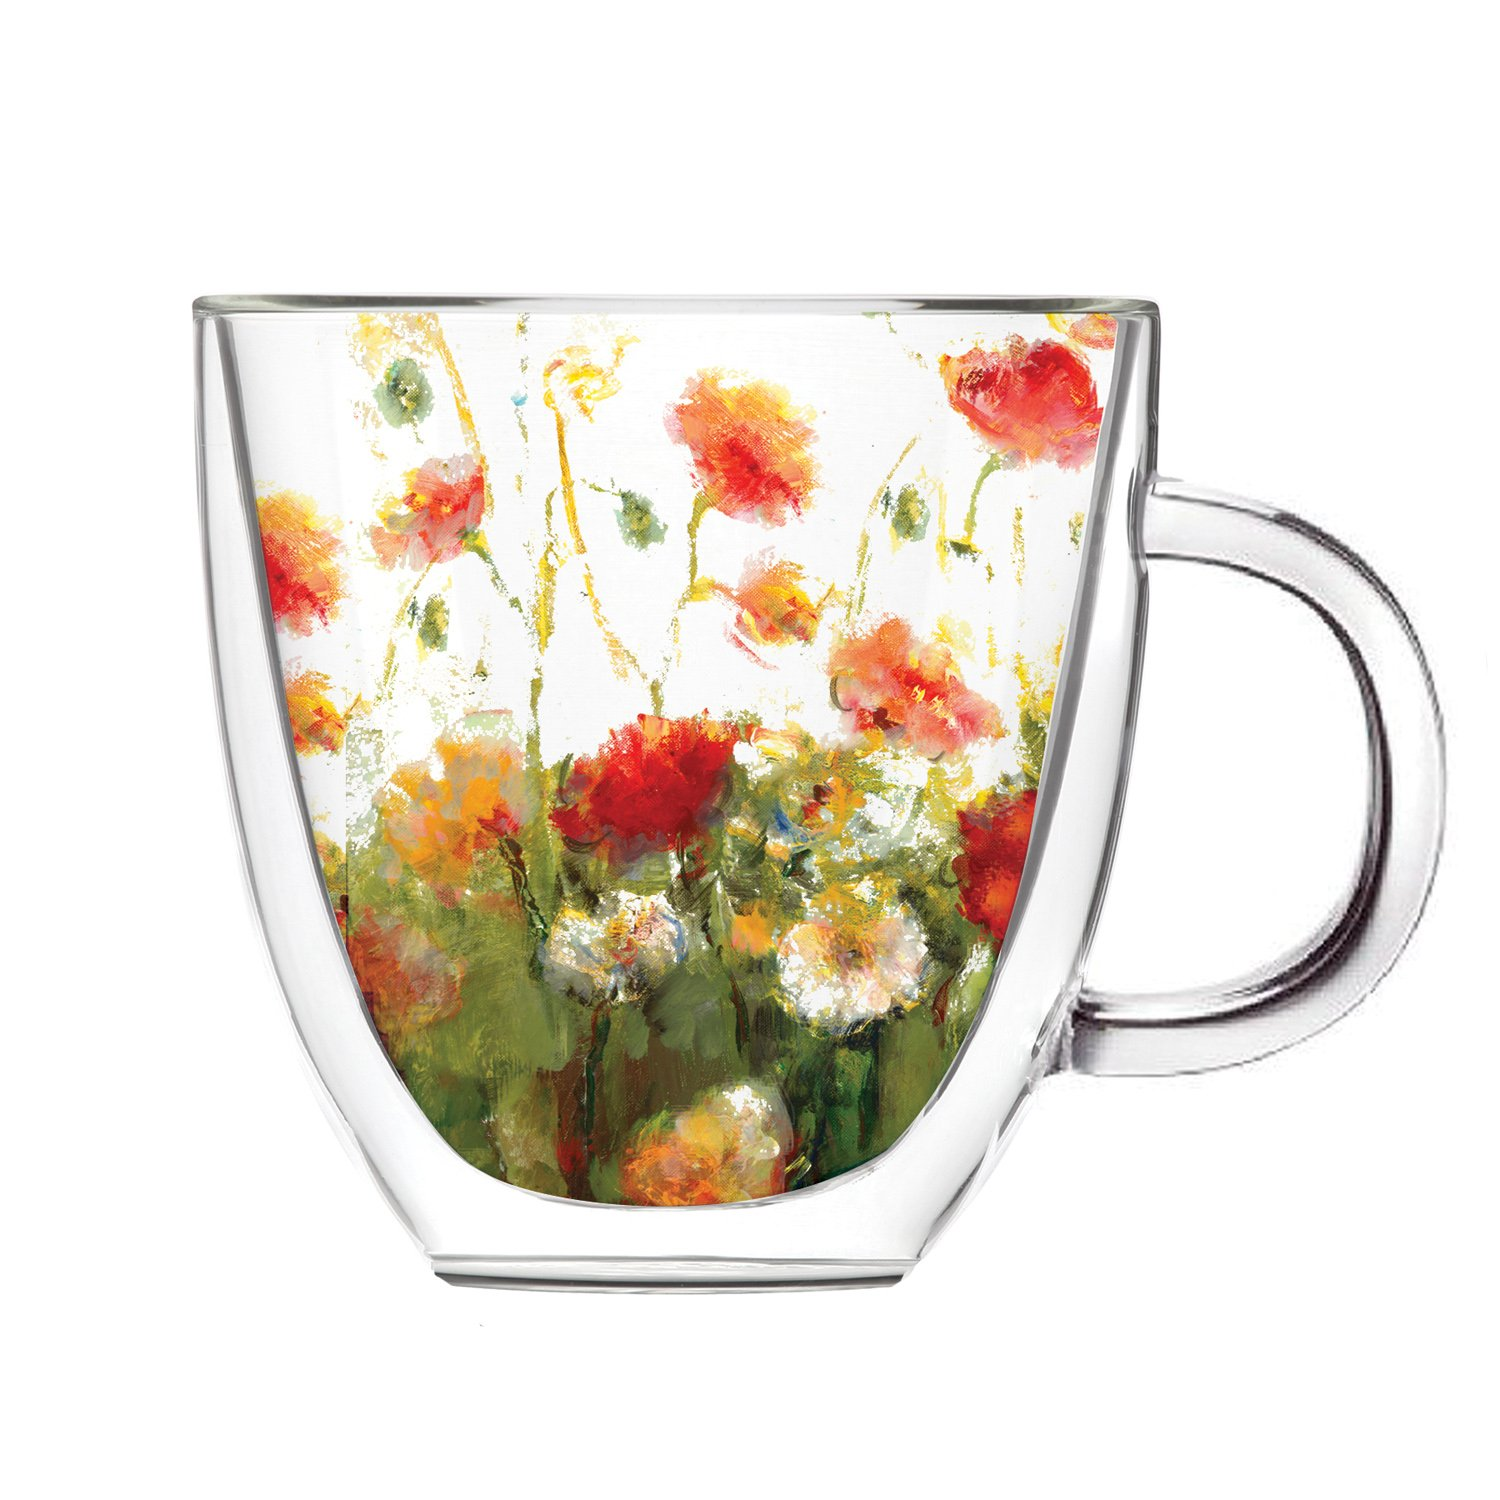 Cypress Home Fleurs Des Champs Glass Coffee Cup with Gift Box, 12 ounces